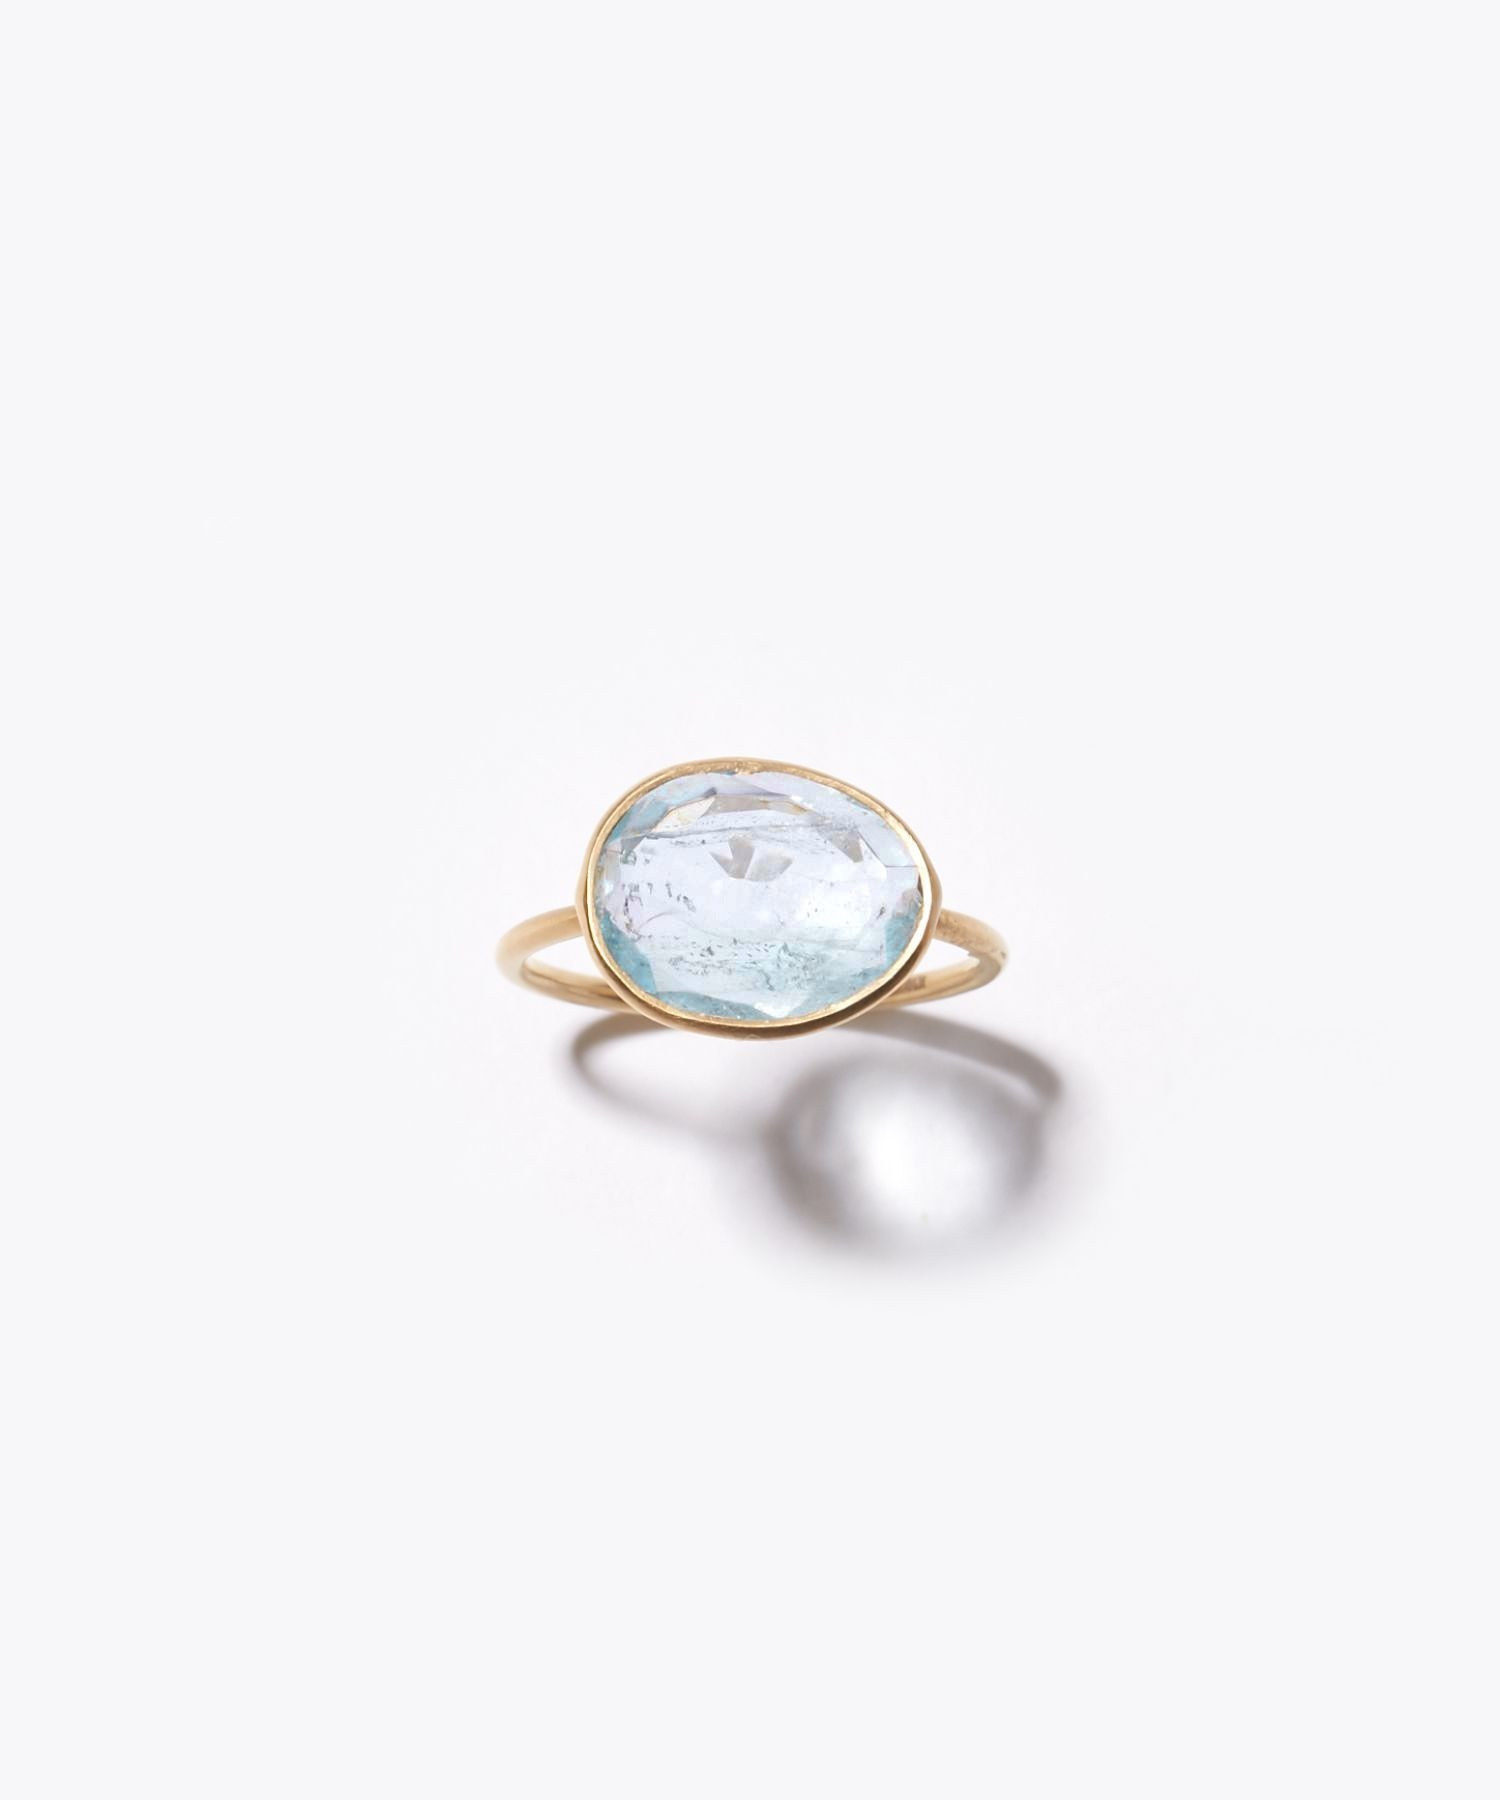 [eutopia] K10 sliced aquamarine ring